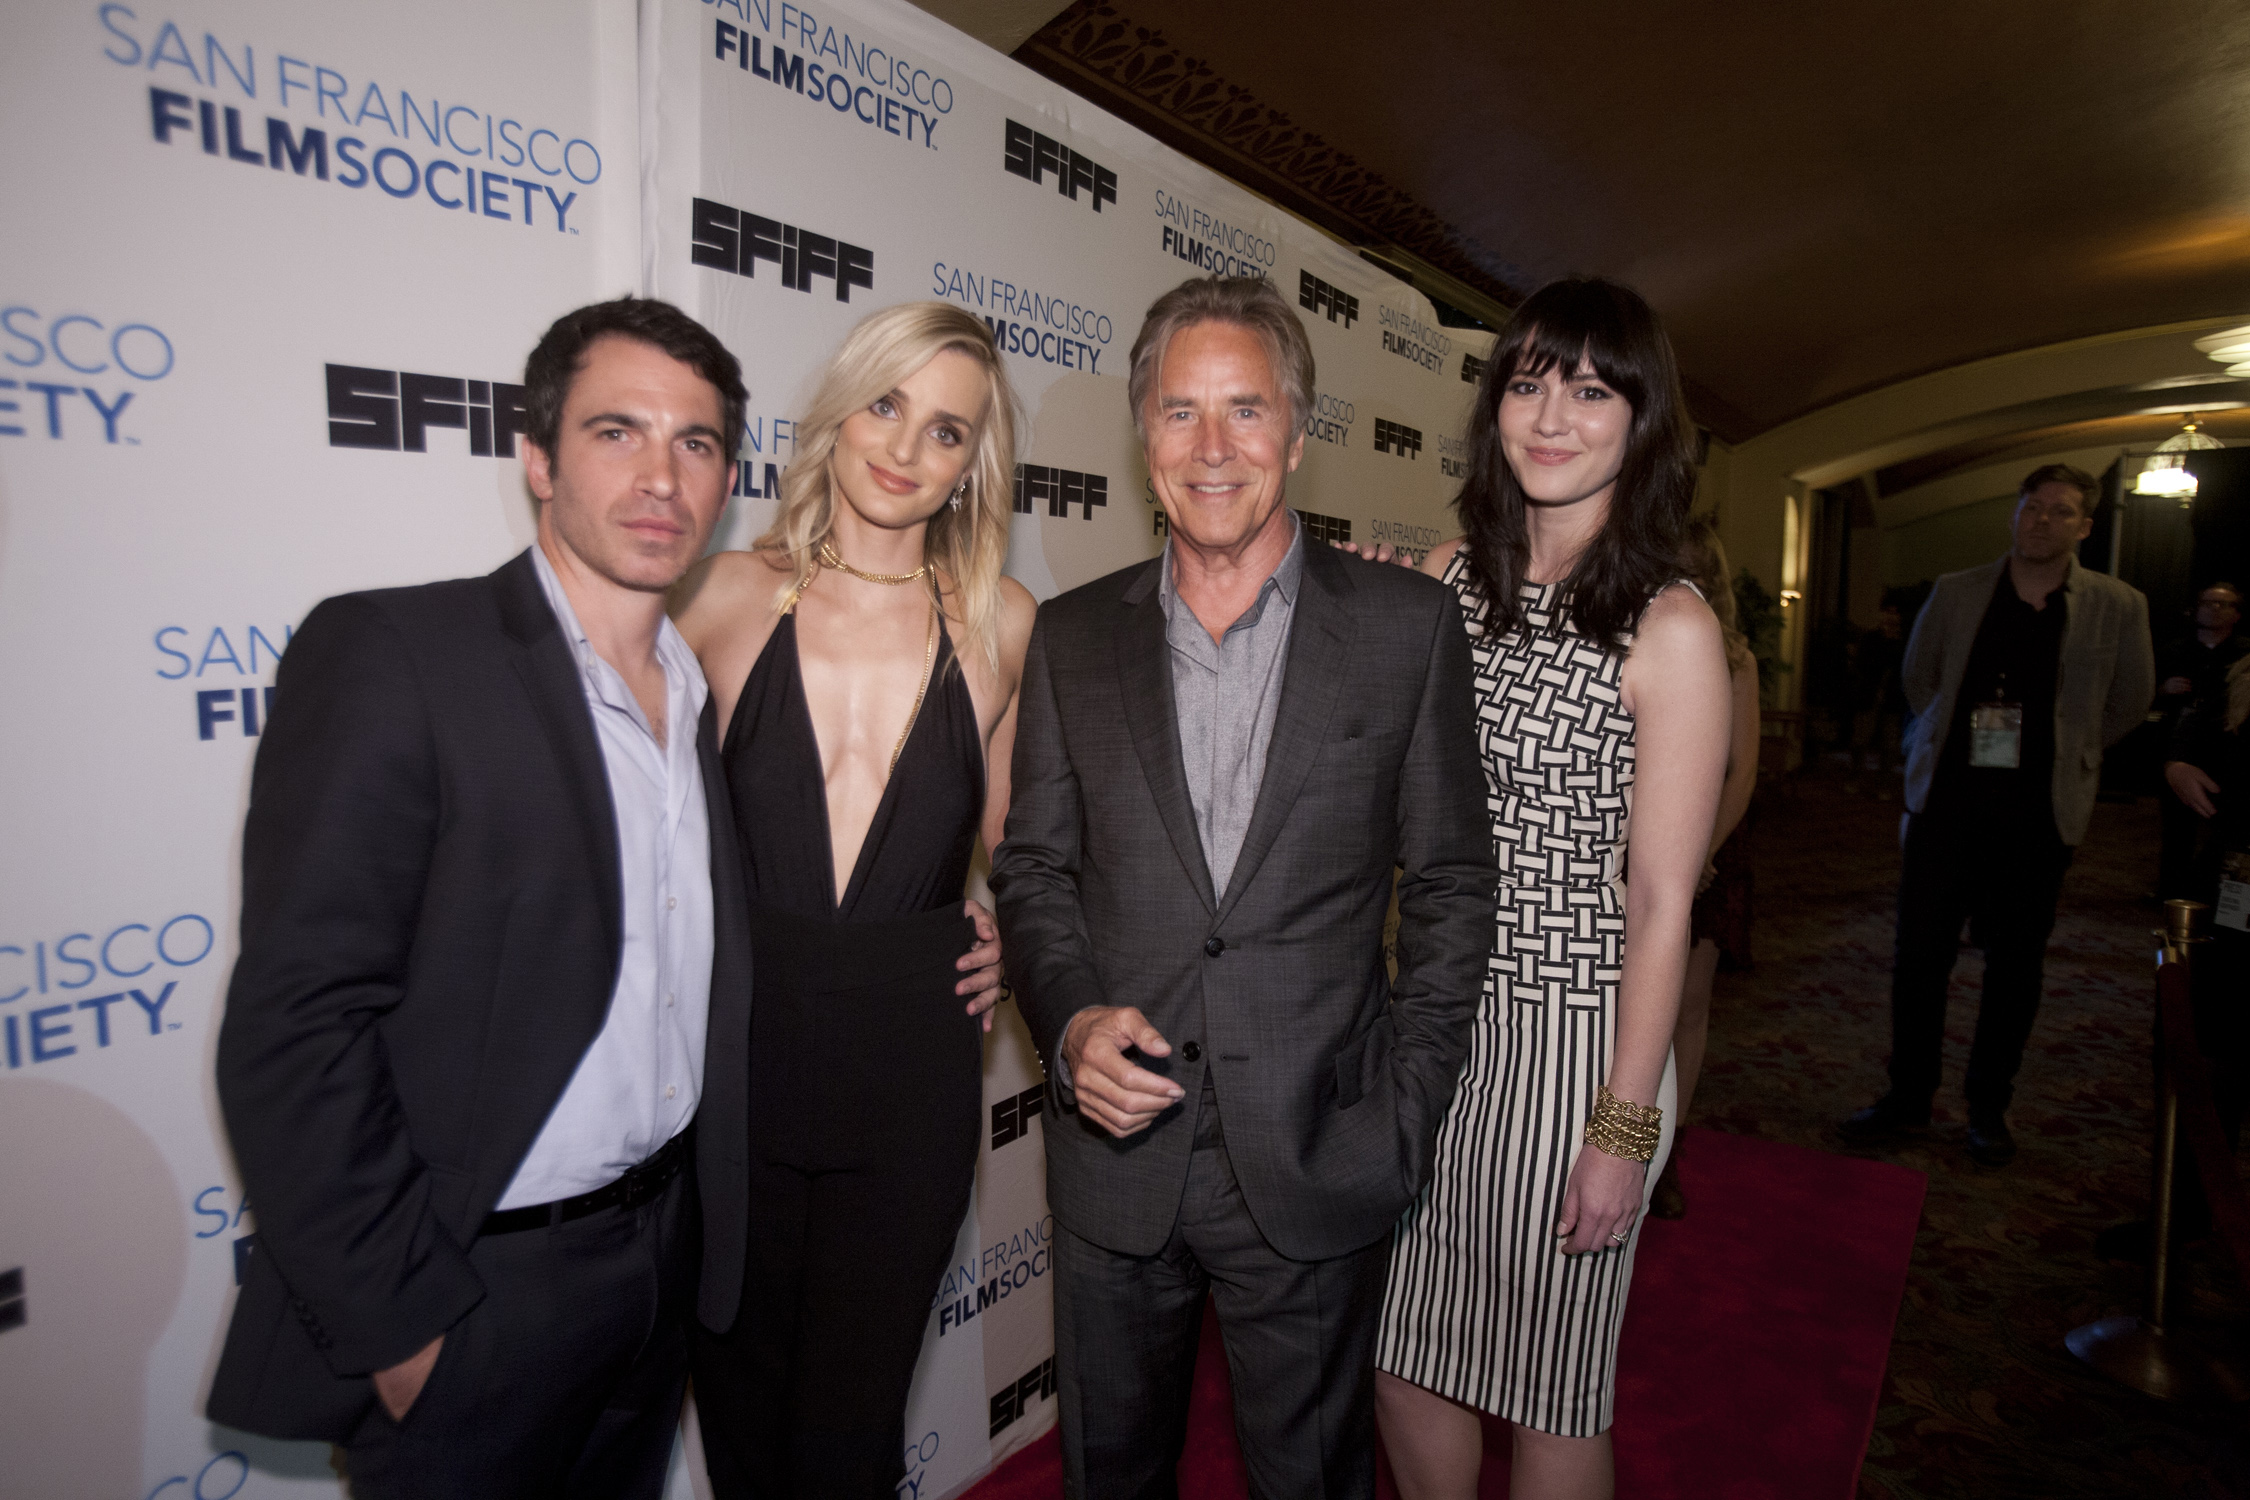 Director Chris Messina with actors Katie Nehra, Don Johnson and Mary Elizabeth Winstead